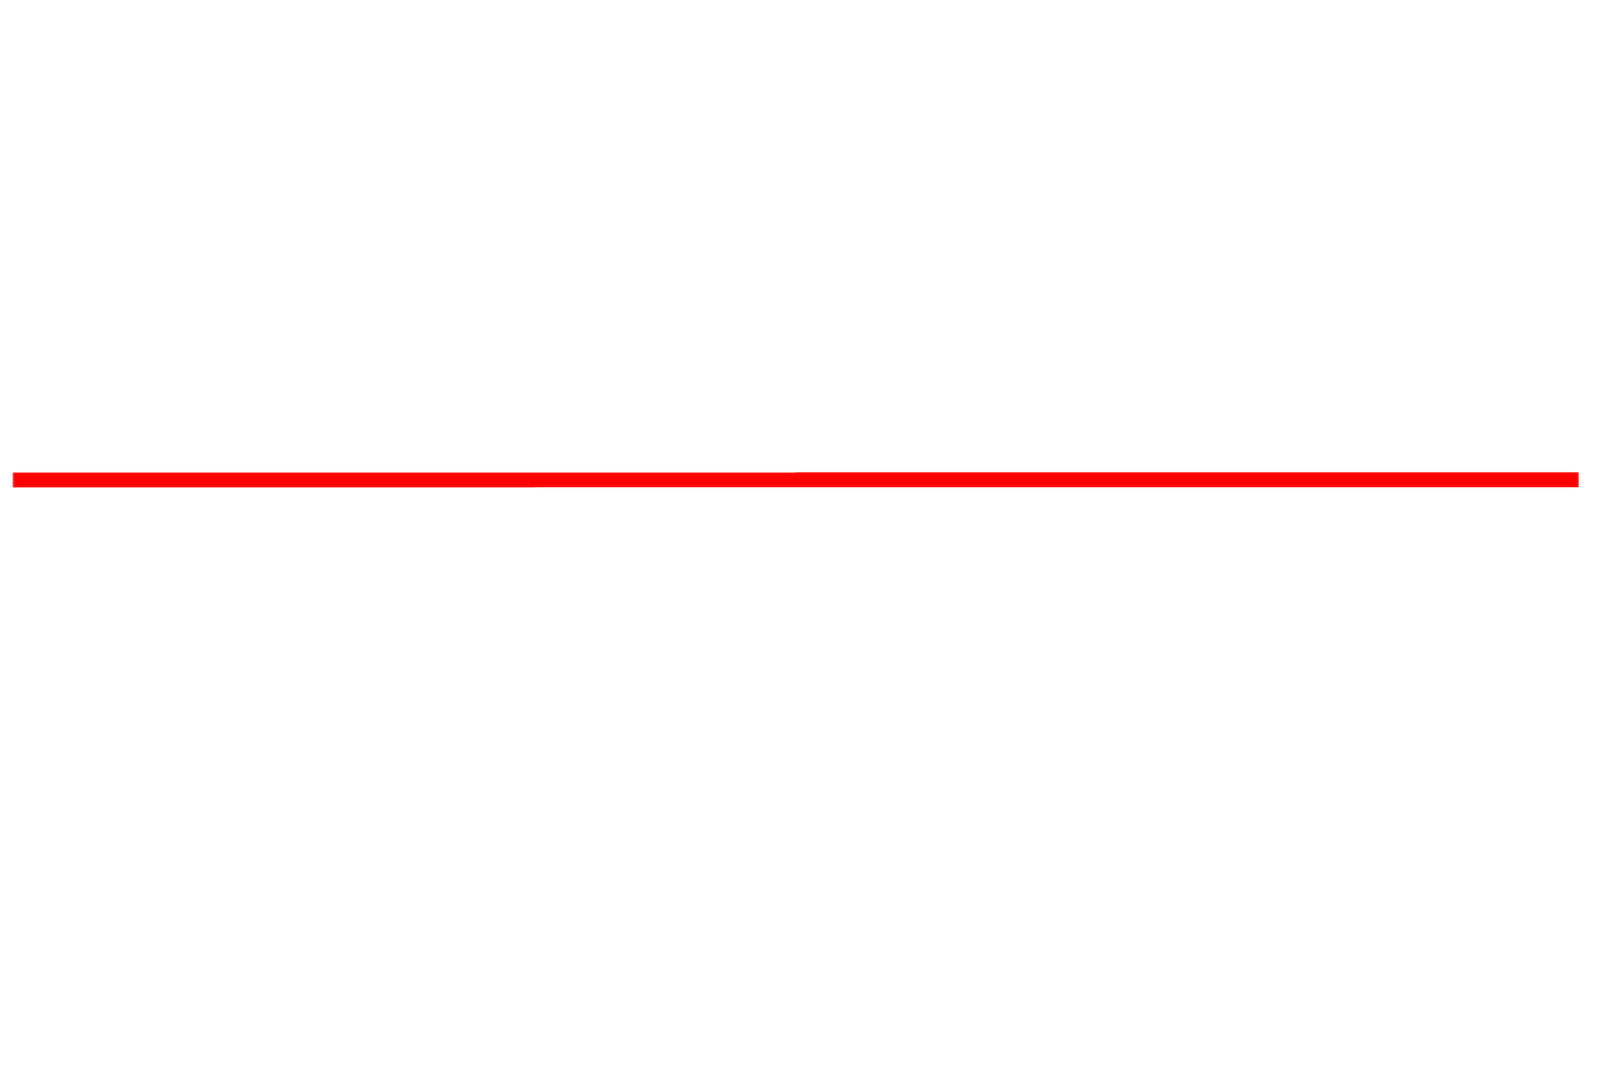 Clipart gun red. The line of control